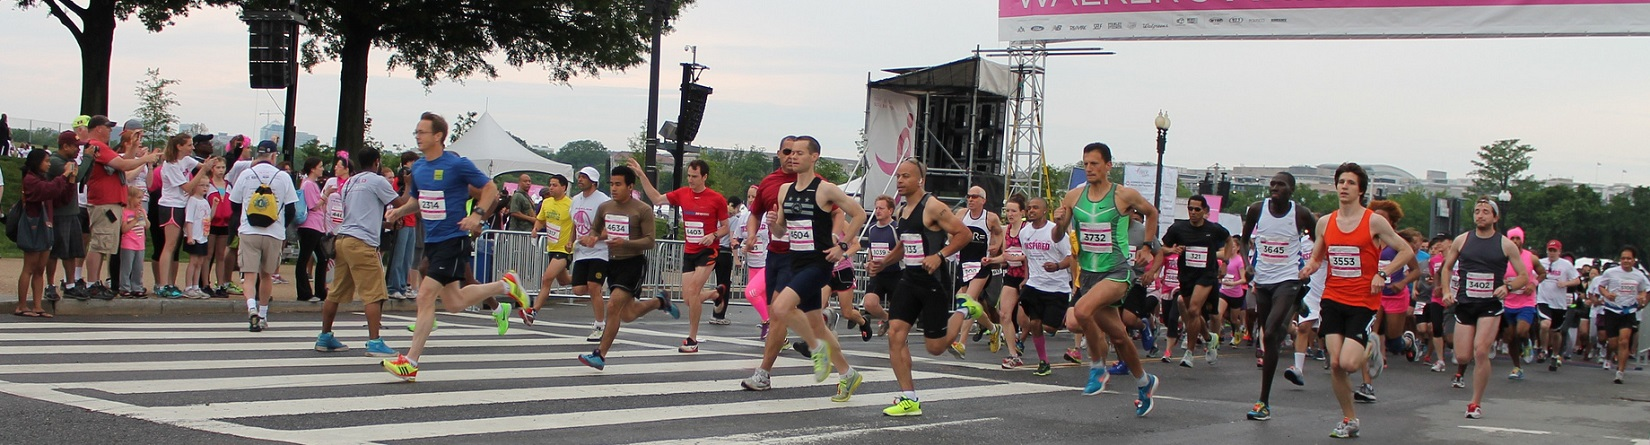 runners participating in a Breast Cancer awareness fundraising event